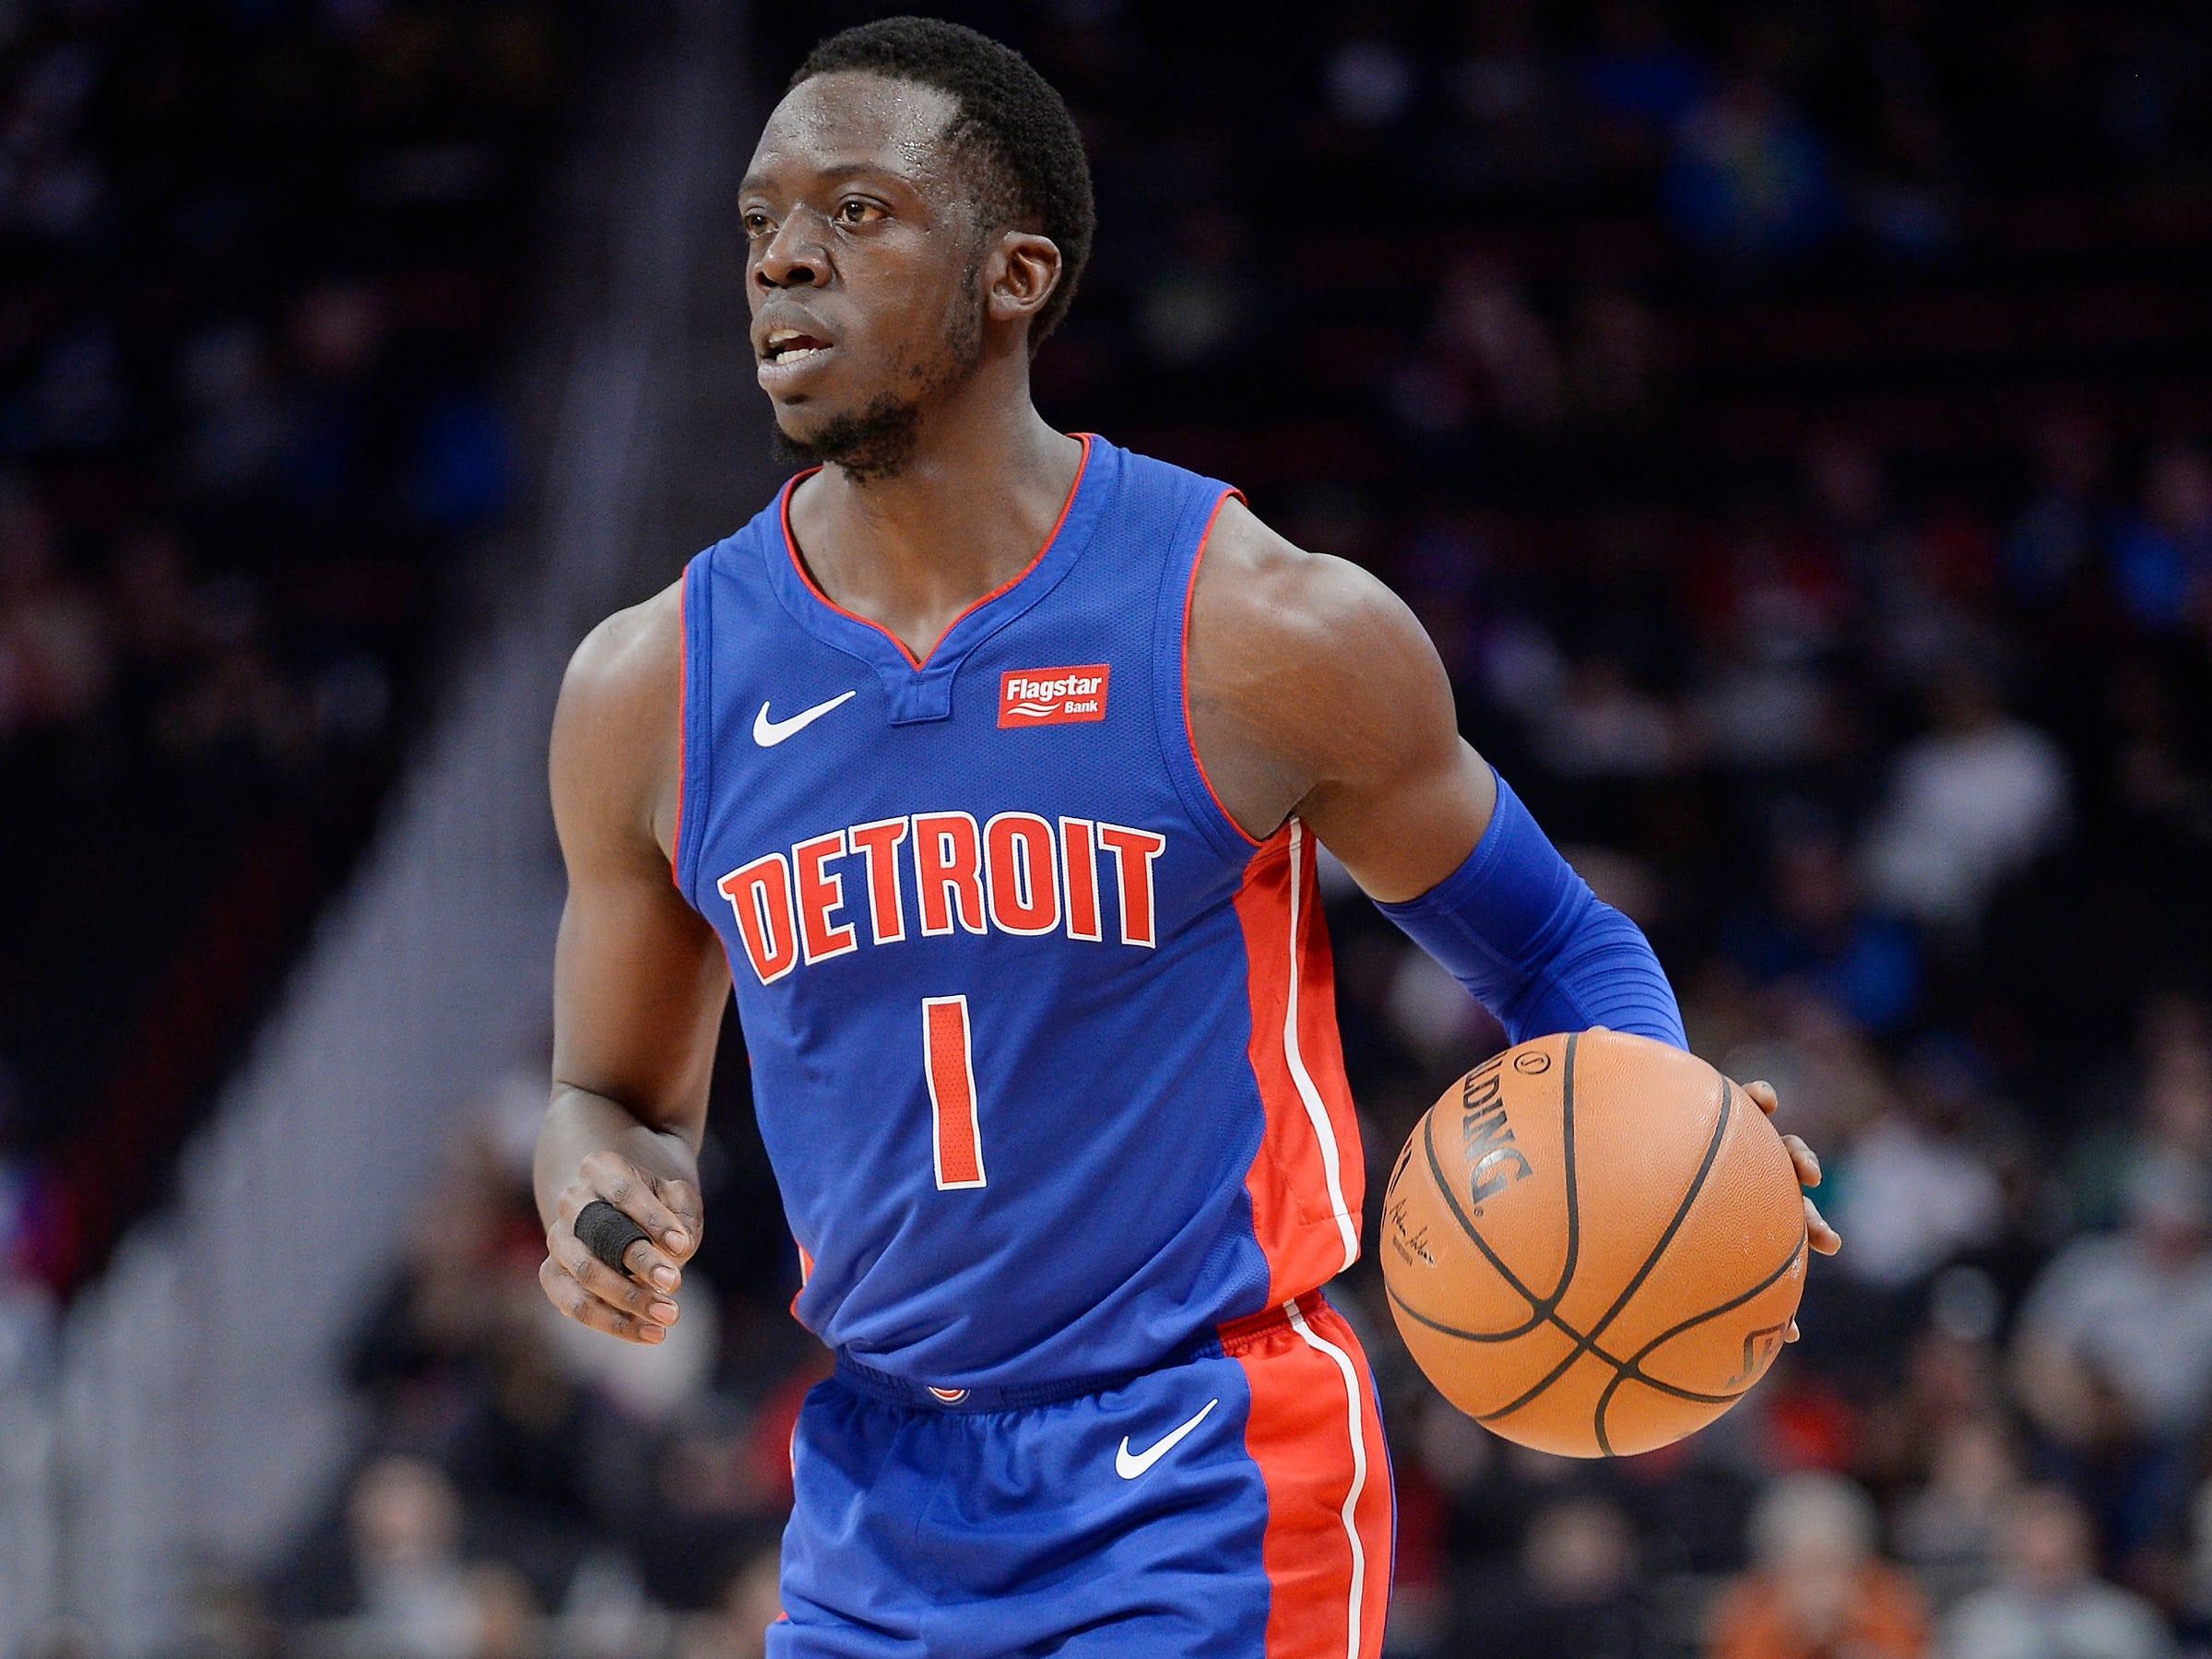 GUARDS -- Reggie Jackson -- Stats: 14.7 pts., 2.7 rebs., 4.2 assts., 34% 3FG in 41 games. Age: 28. Coming off last season's ankle sprain, he had high expectations as a key piece with Blake Griffin. He's been moved off the ball and in the role of a spot-up shooter, which he's done pretty well. He doesn't have the same speed and burst as previous years, and he's still settling into his new role. Grade: C